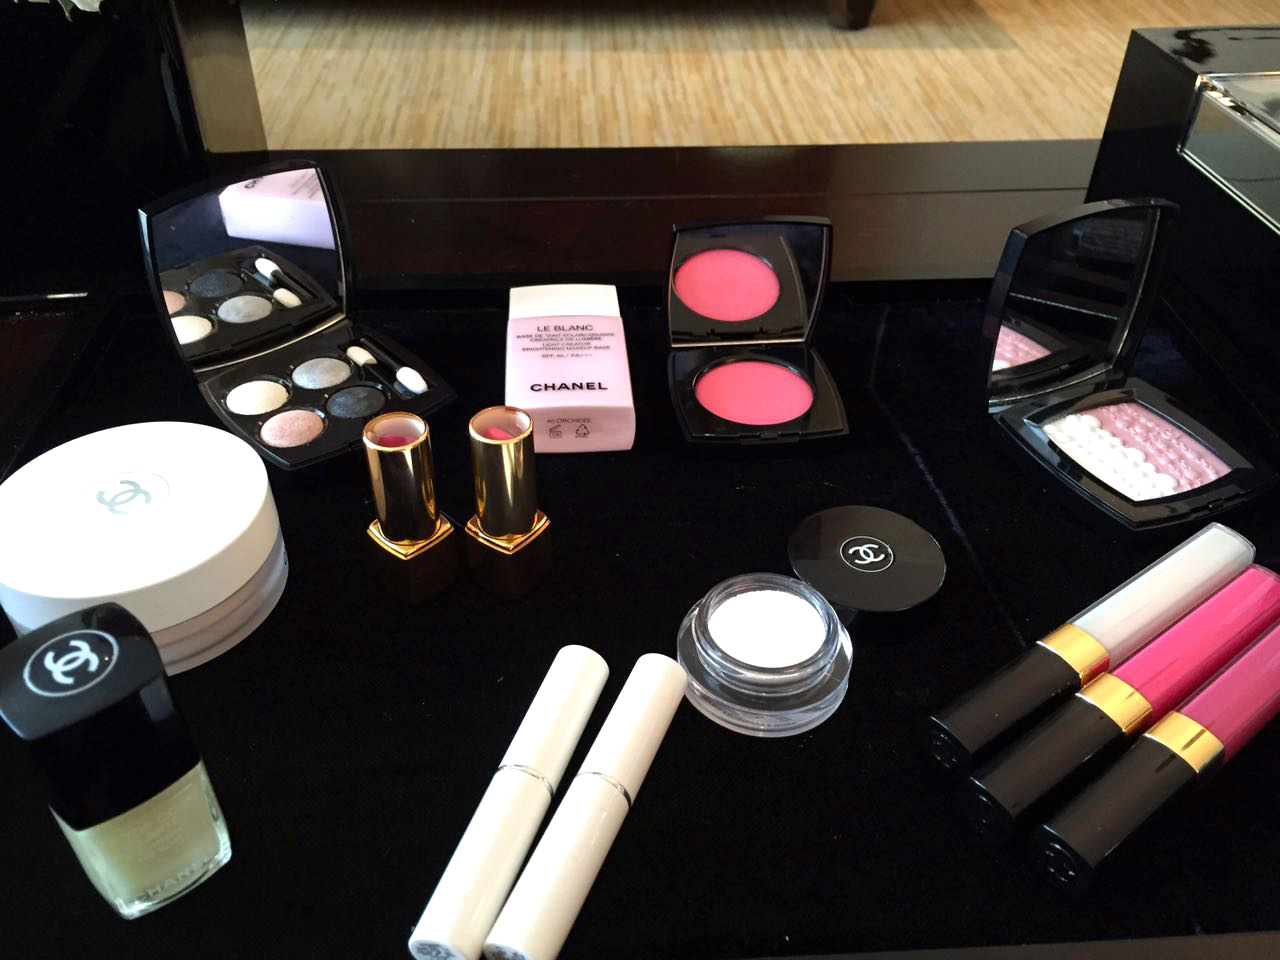 Chanel Le Blanc Makeup Base The Spoiled Mummy De